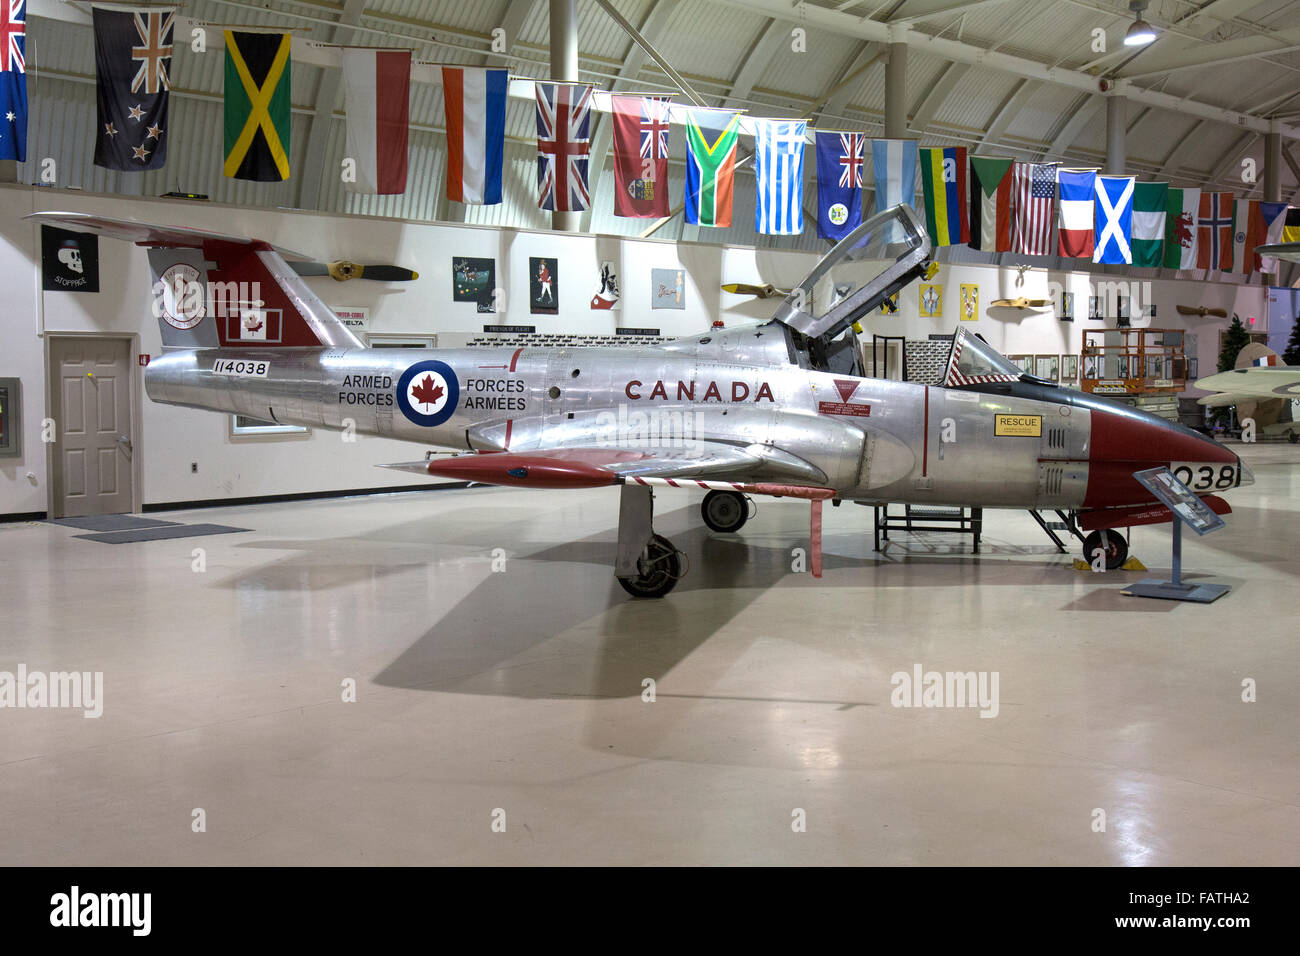 An exhibit inside the Canadian Warplane Heritage Museum in Hamilton, Ontario. A 1965 Canadair CL-41 Tutor of the Stock Photo